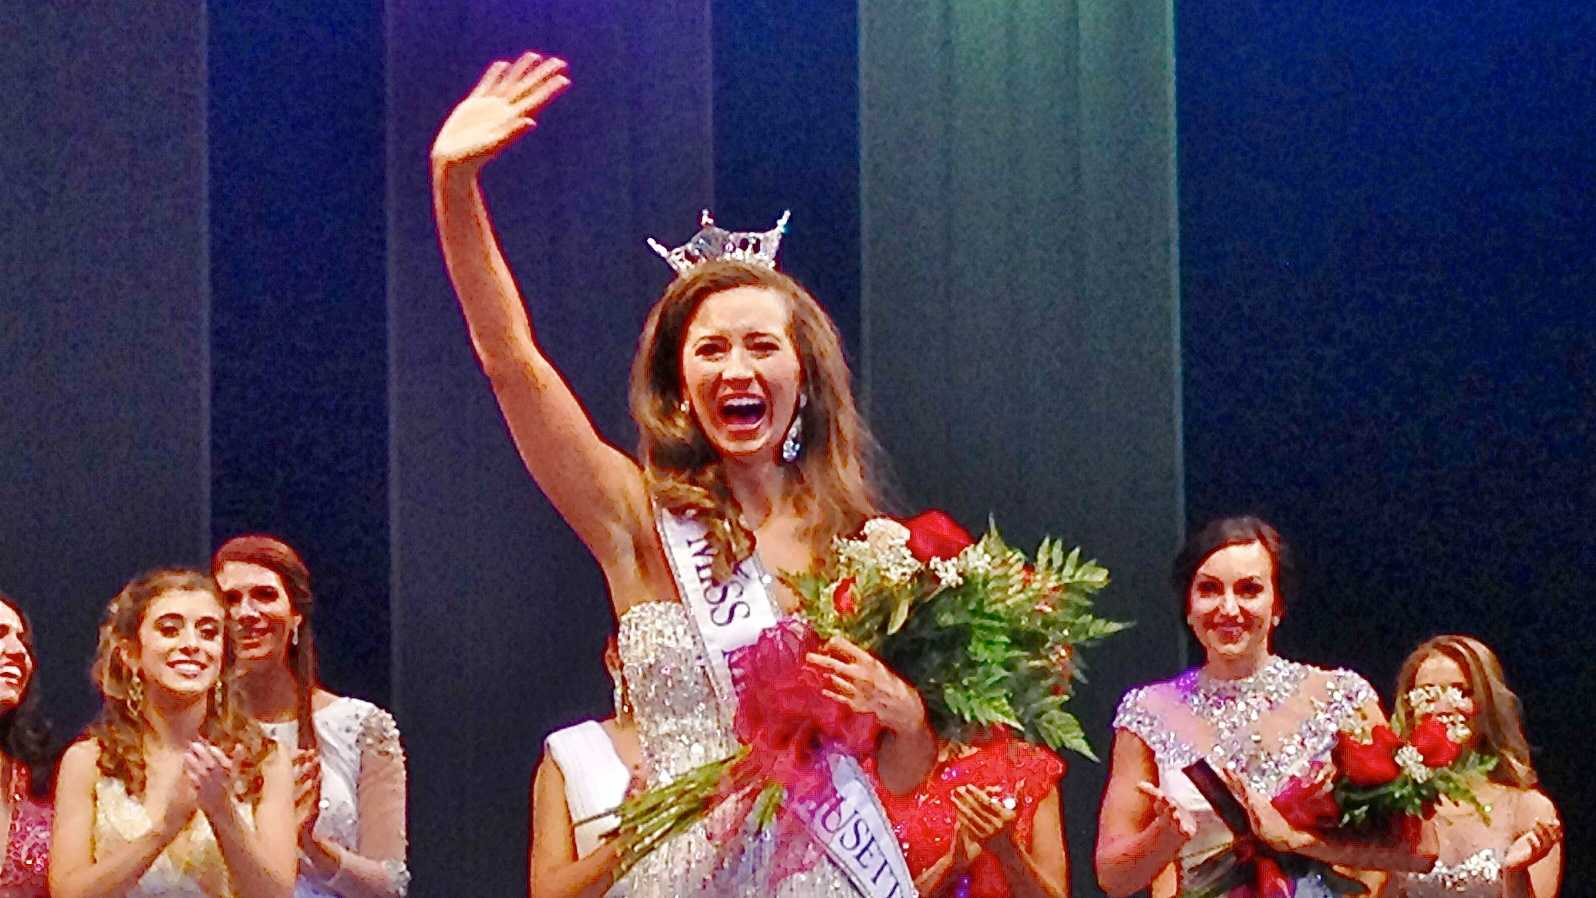 Miss. Massachusetts 2014